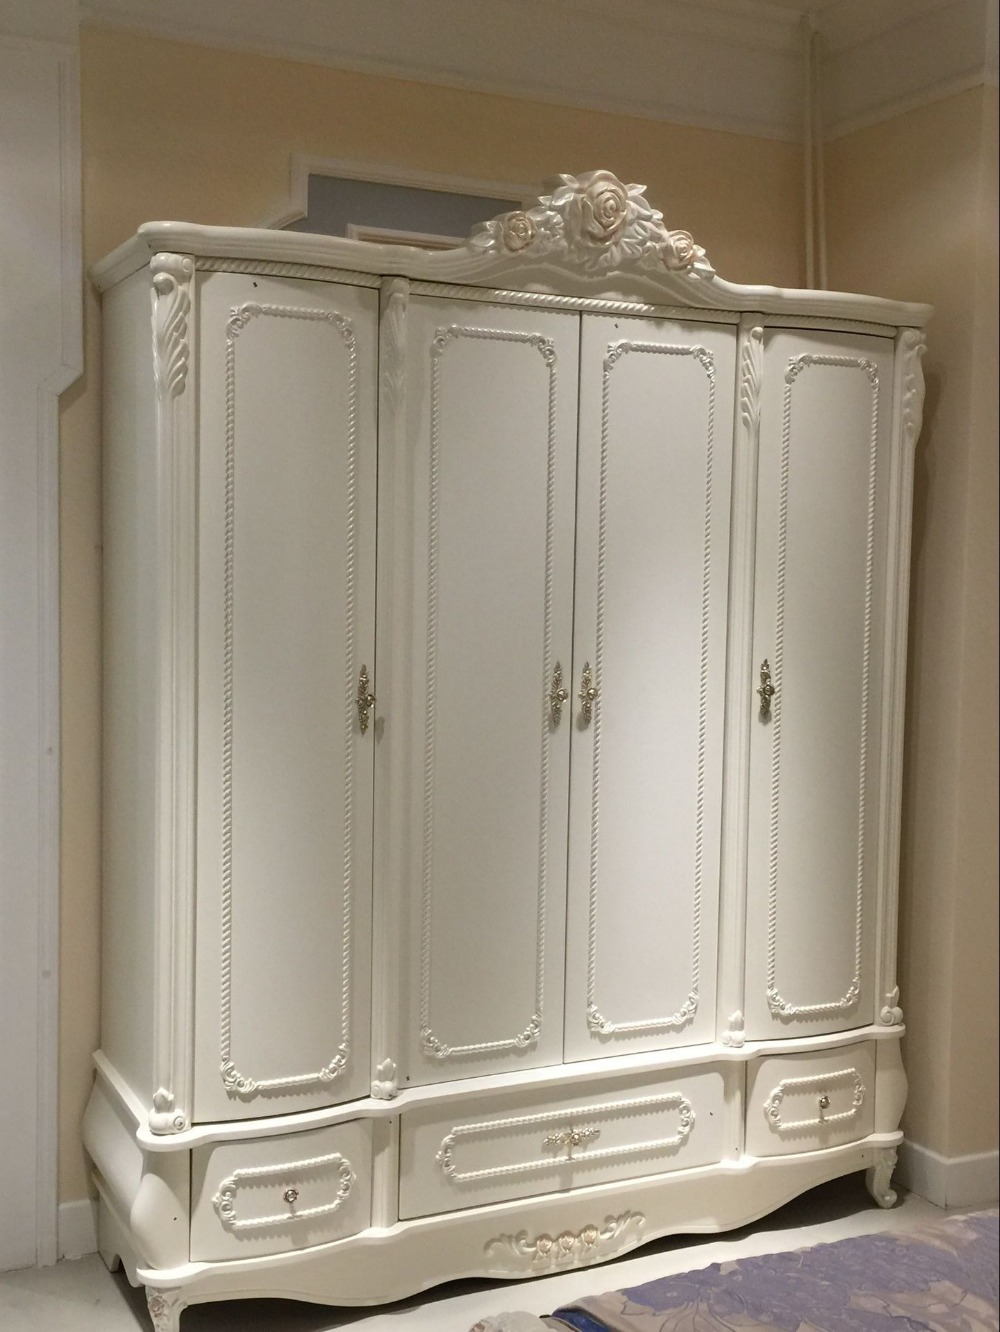 french style 4 door bedroom wardrobe cabinet 0409 8859 in wardrobes from furniture on aliexpress. Black Bedroom Furniture Sets. Home Design Ideas